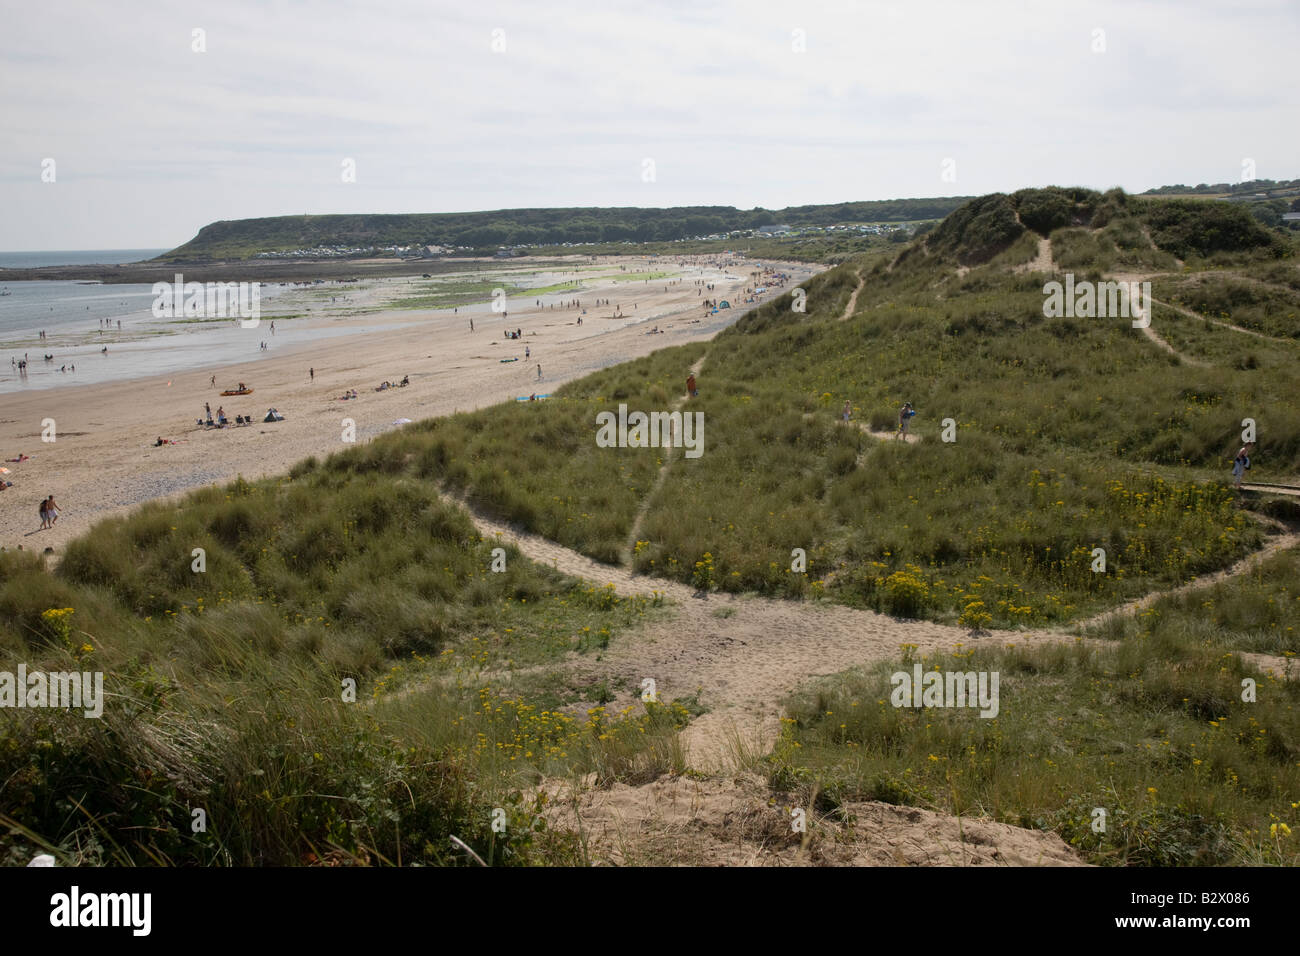 Beach and burrows at Horton looking towards Port Eynon Stock Photo